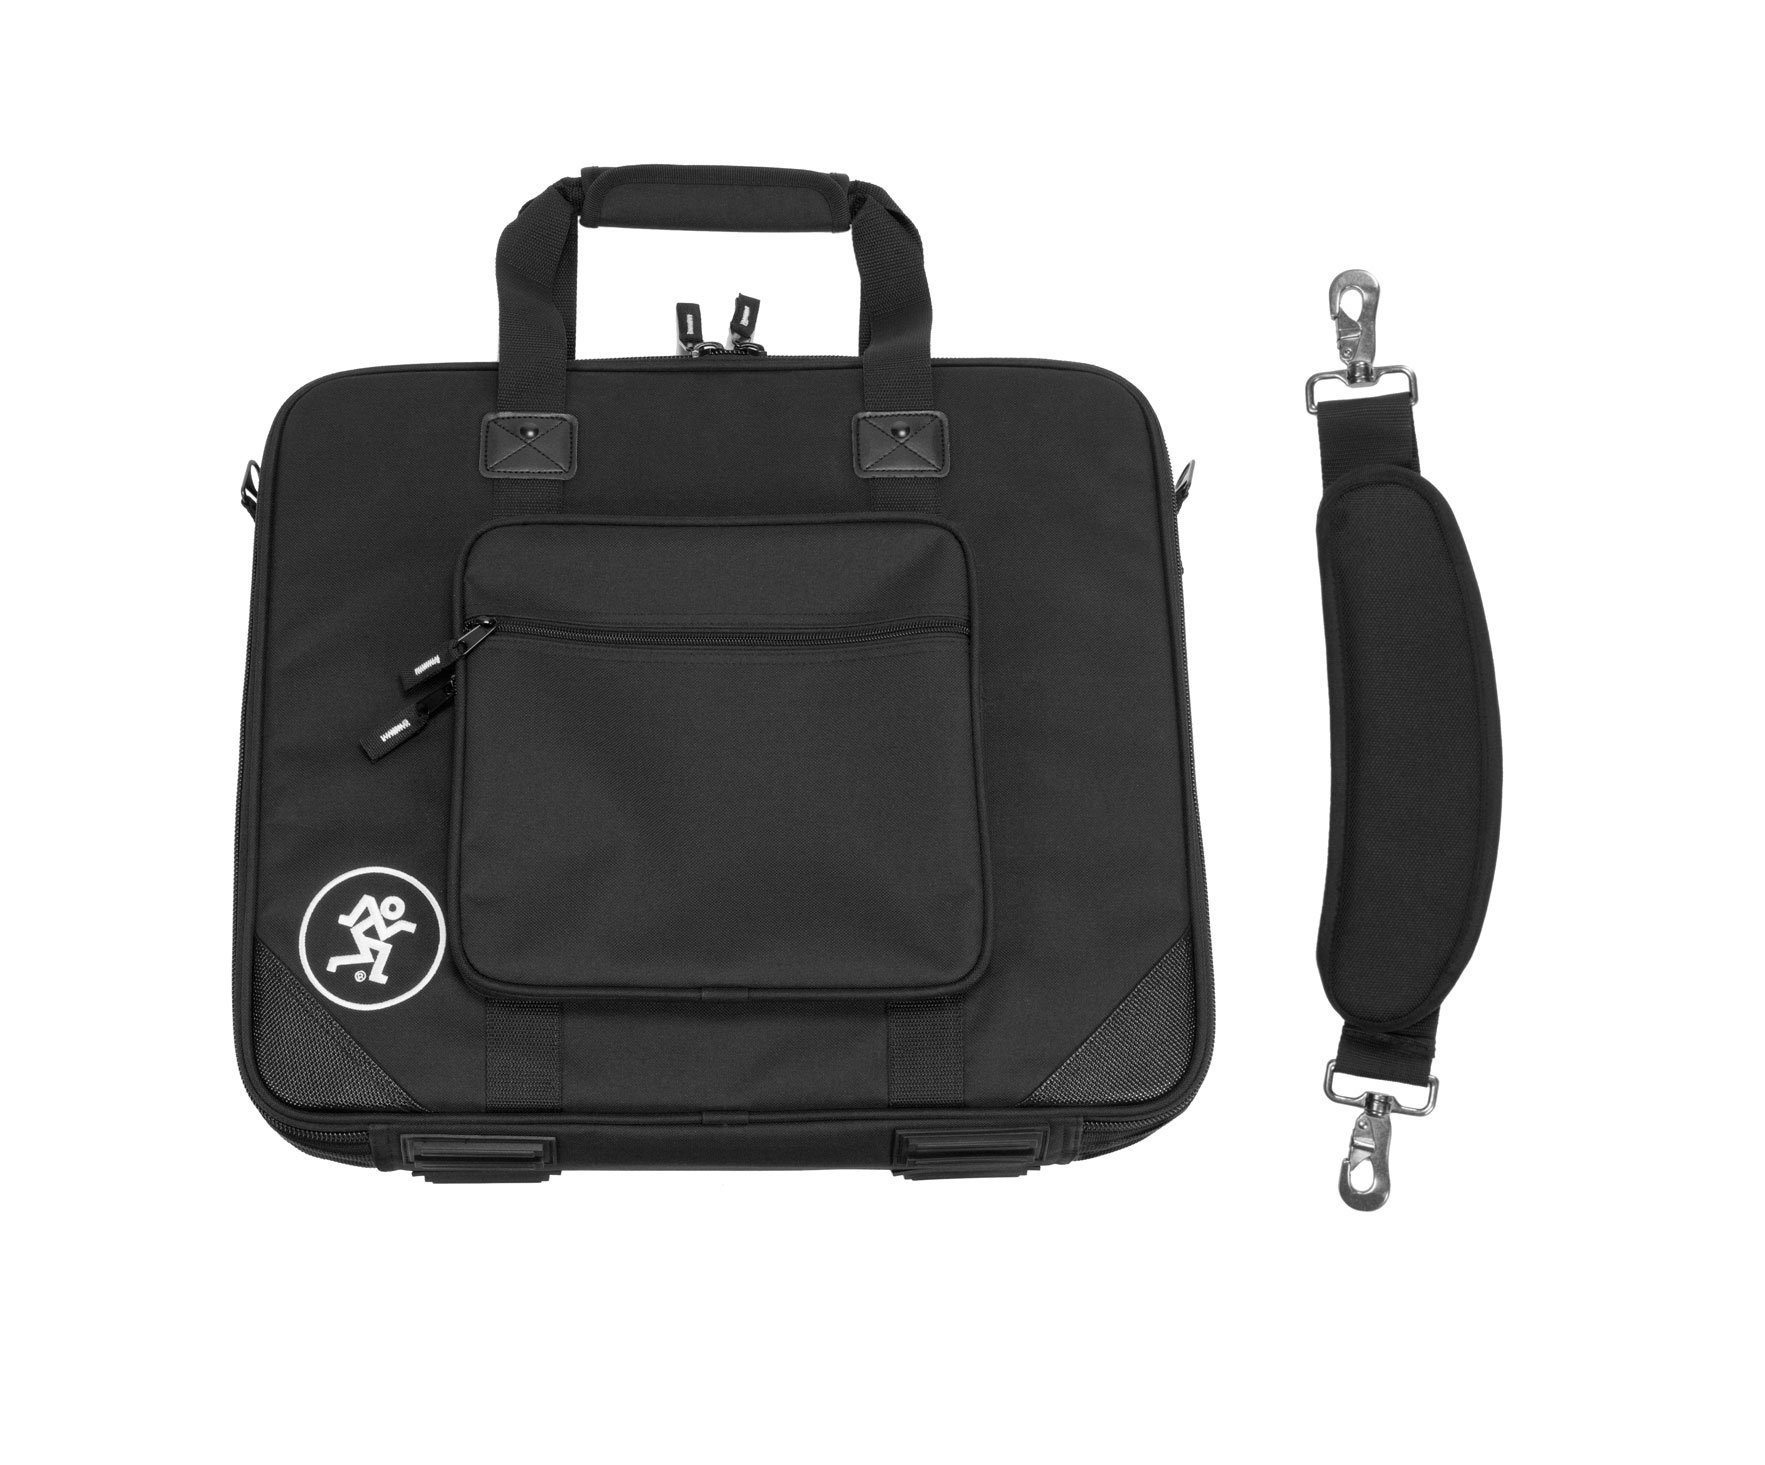 Mackie Mixer Bag for ProFX22 (ProFX22 Bag) by Mackie